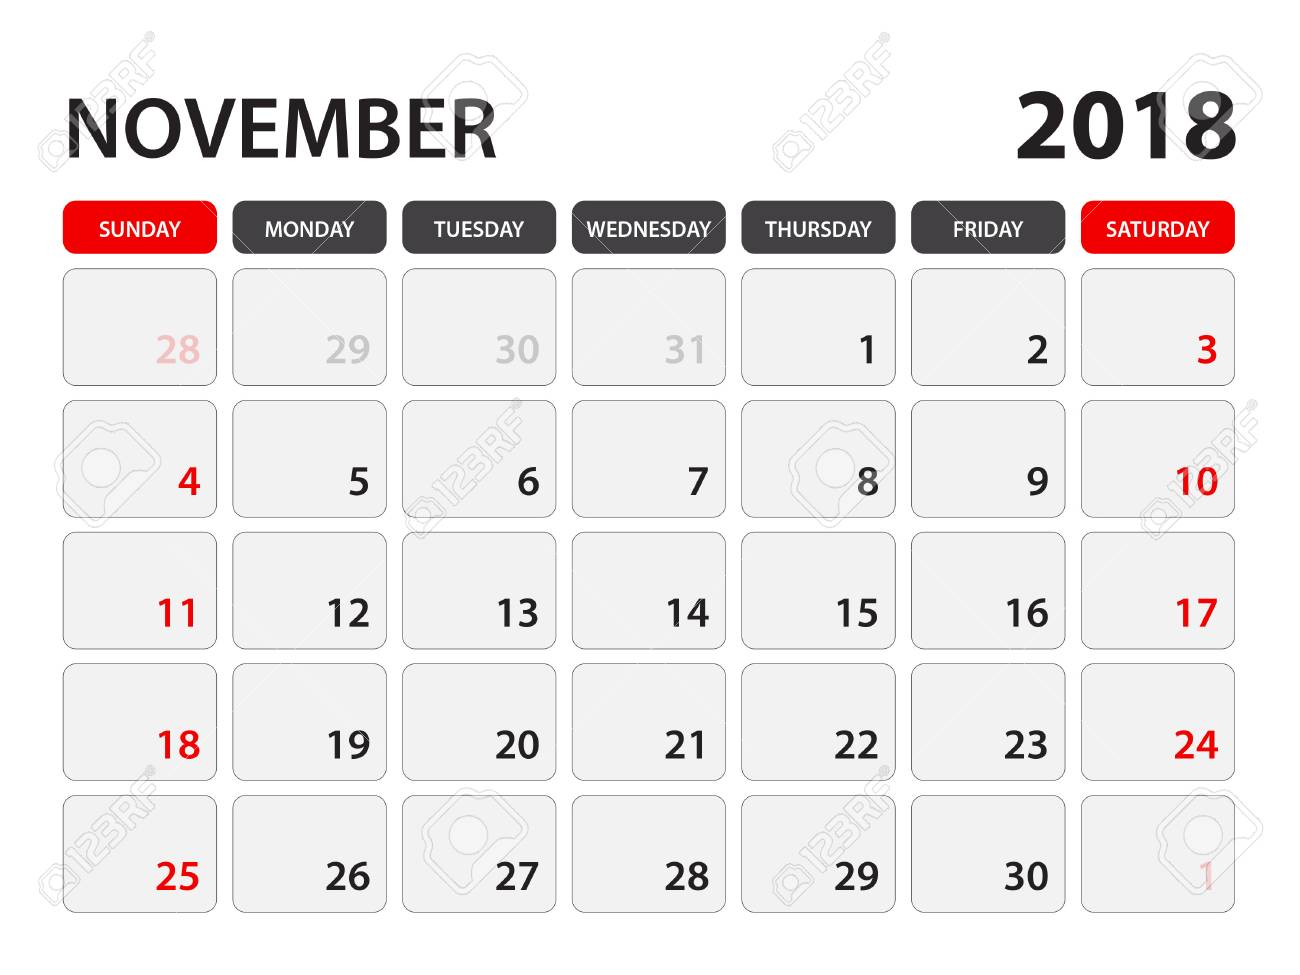 Calendario Con Week 2018.Calendar For November 2018 Week Starts On Monday